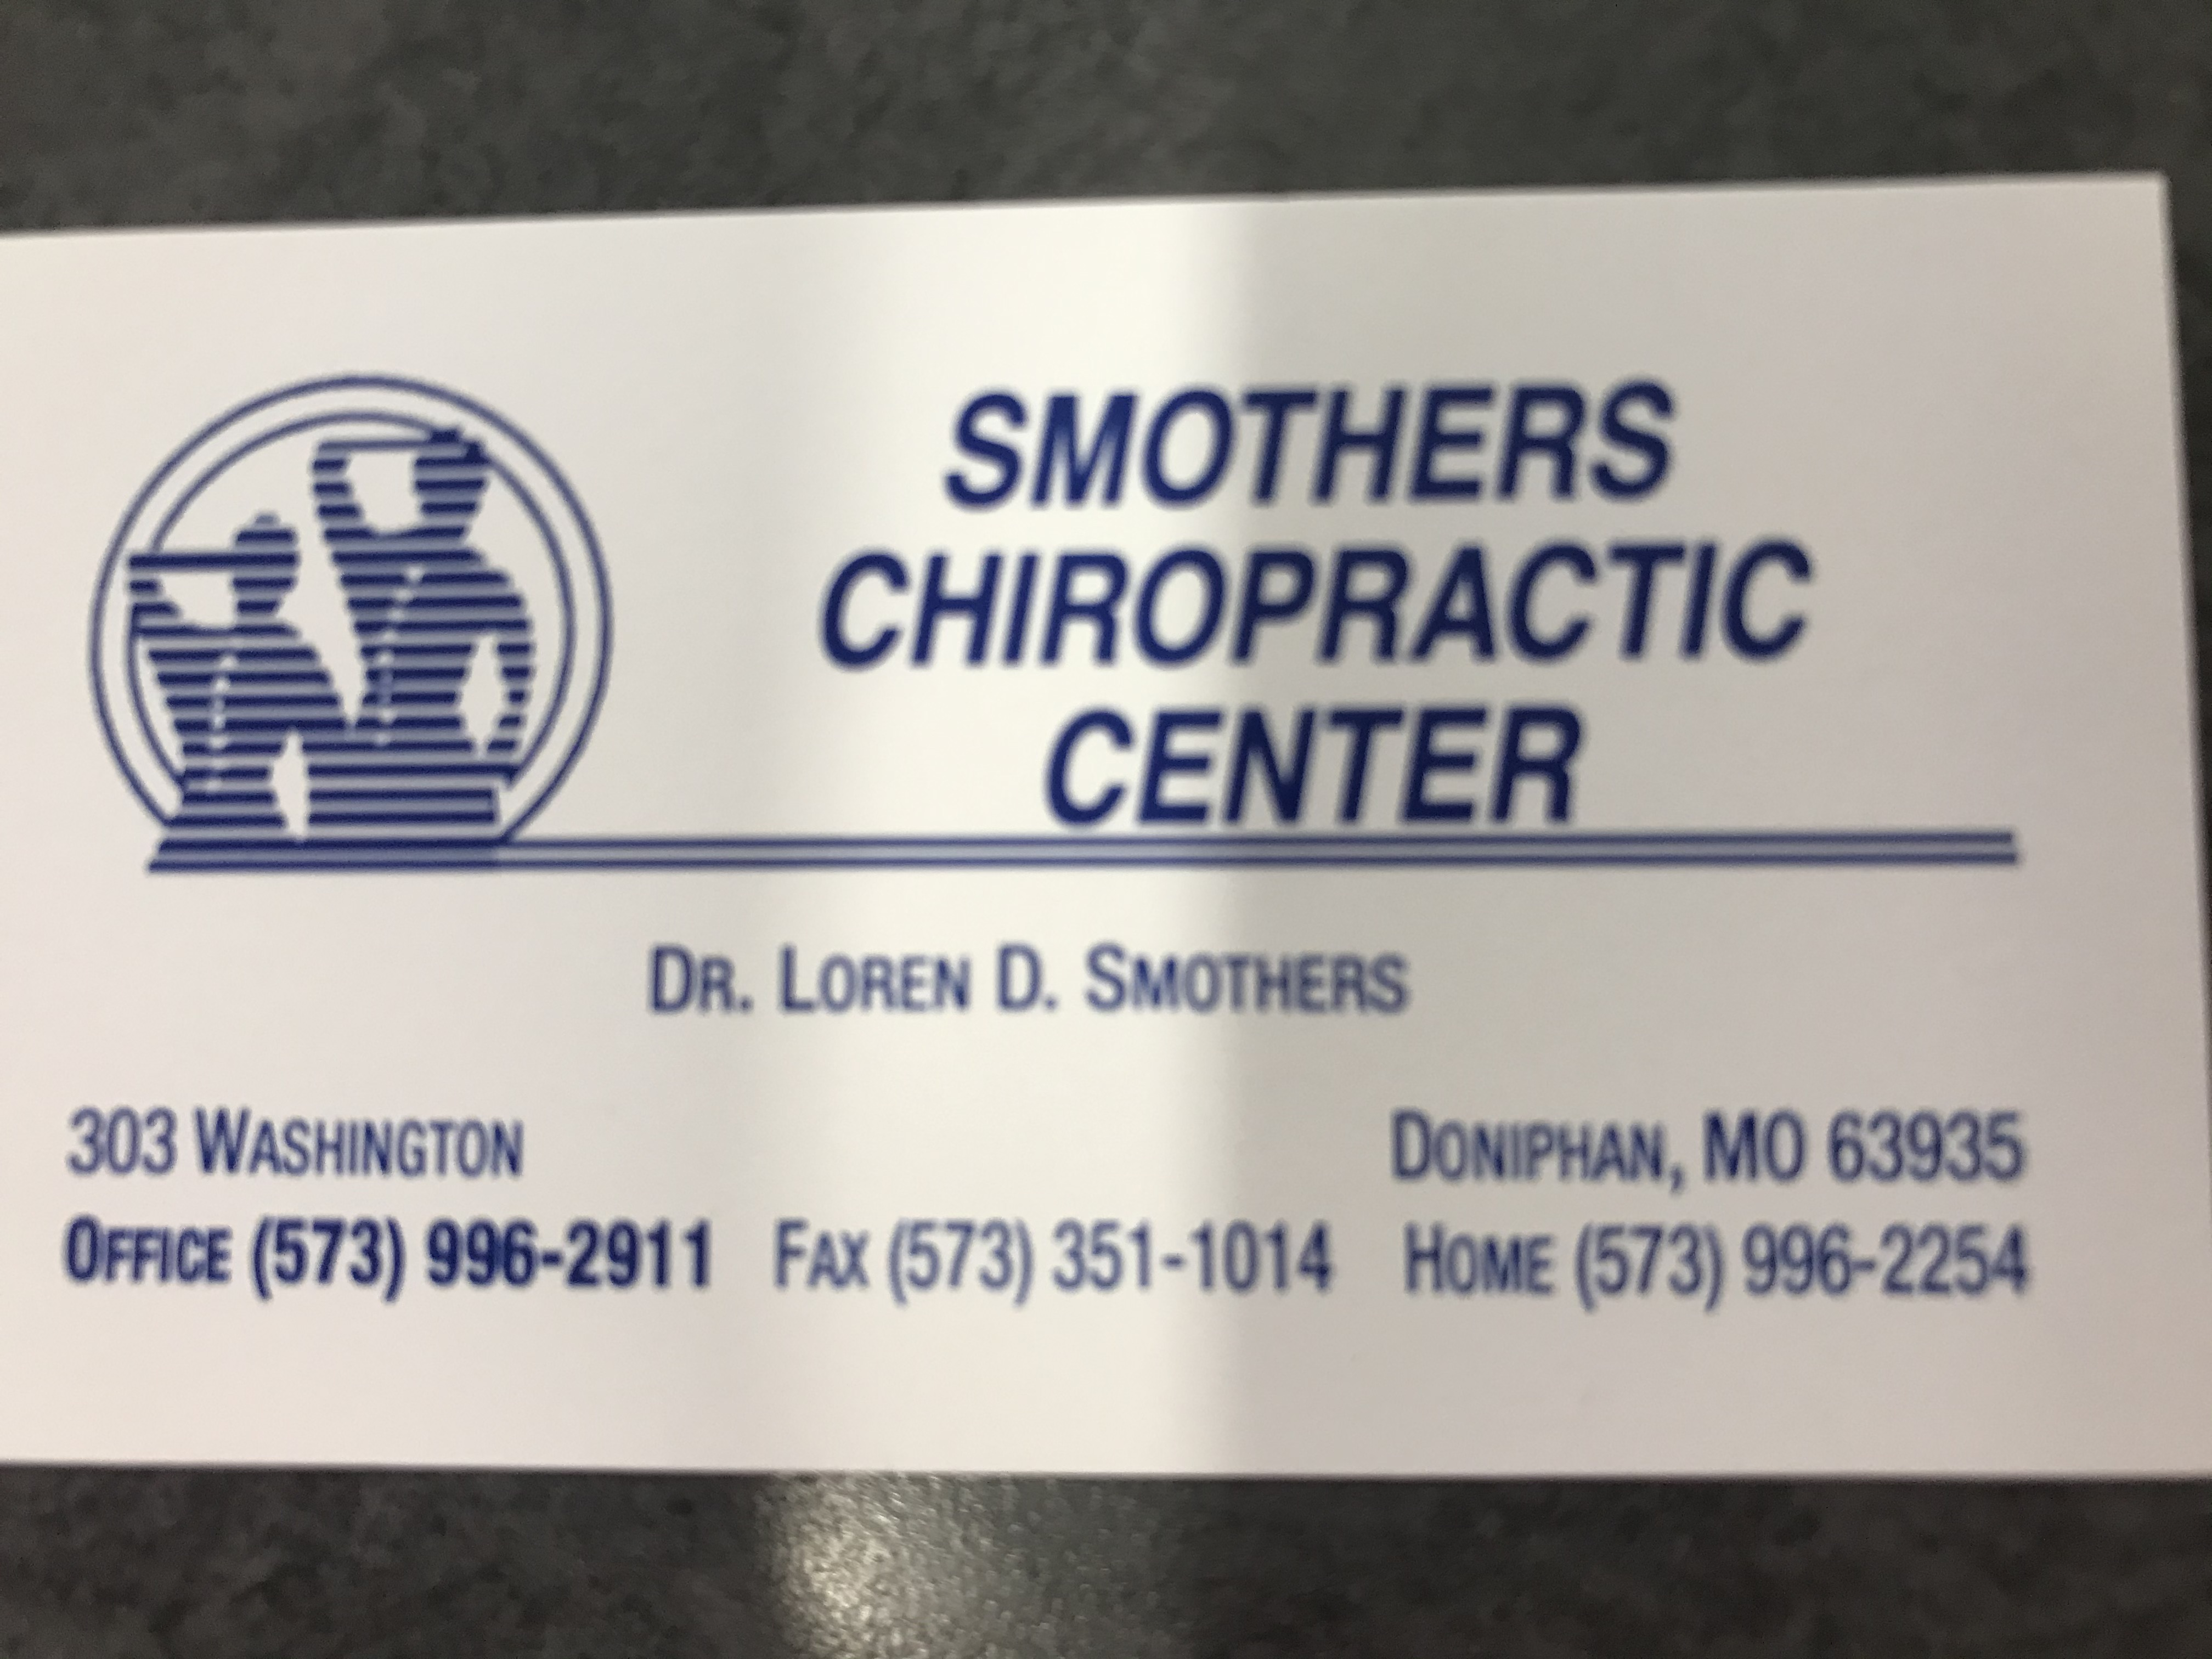 Smothers Chiropractic Center